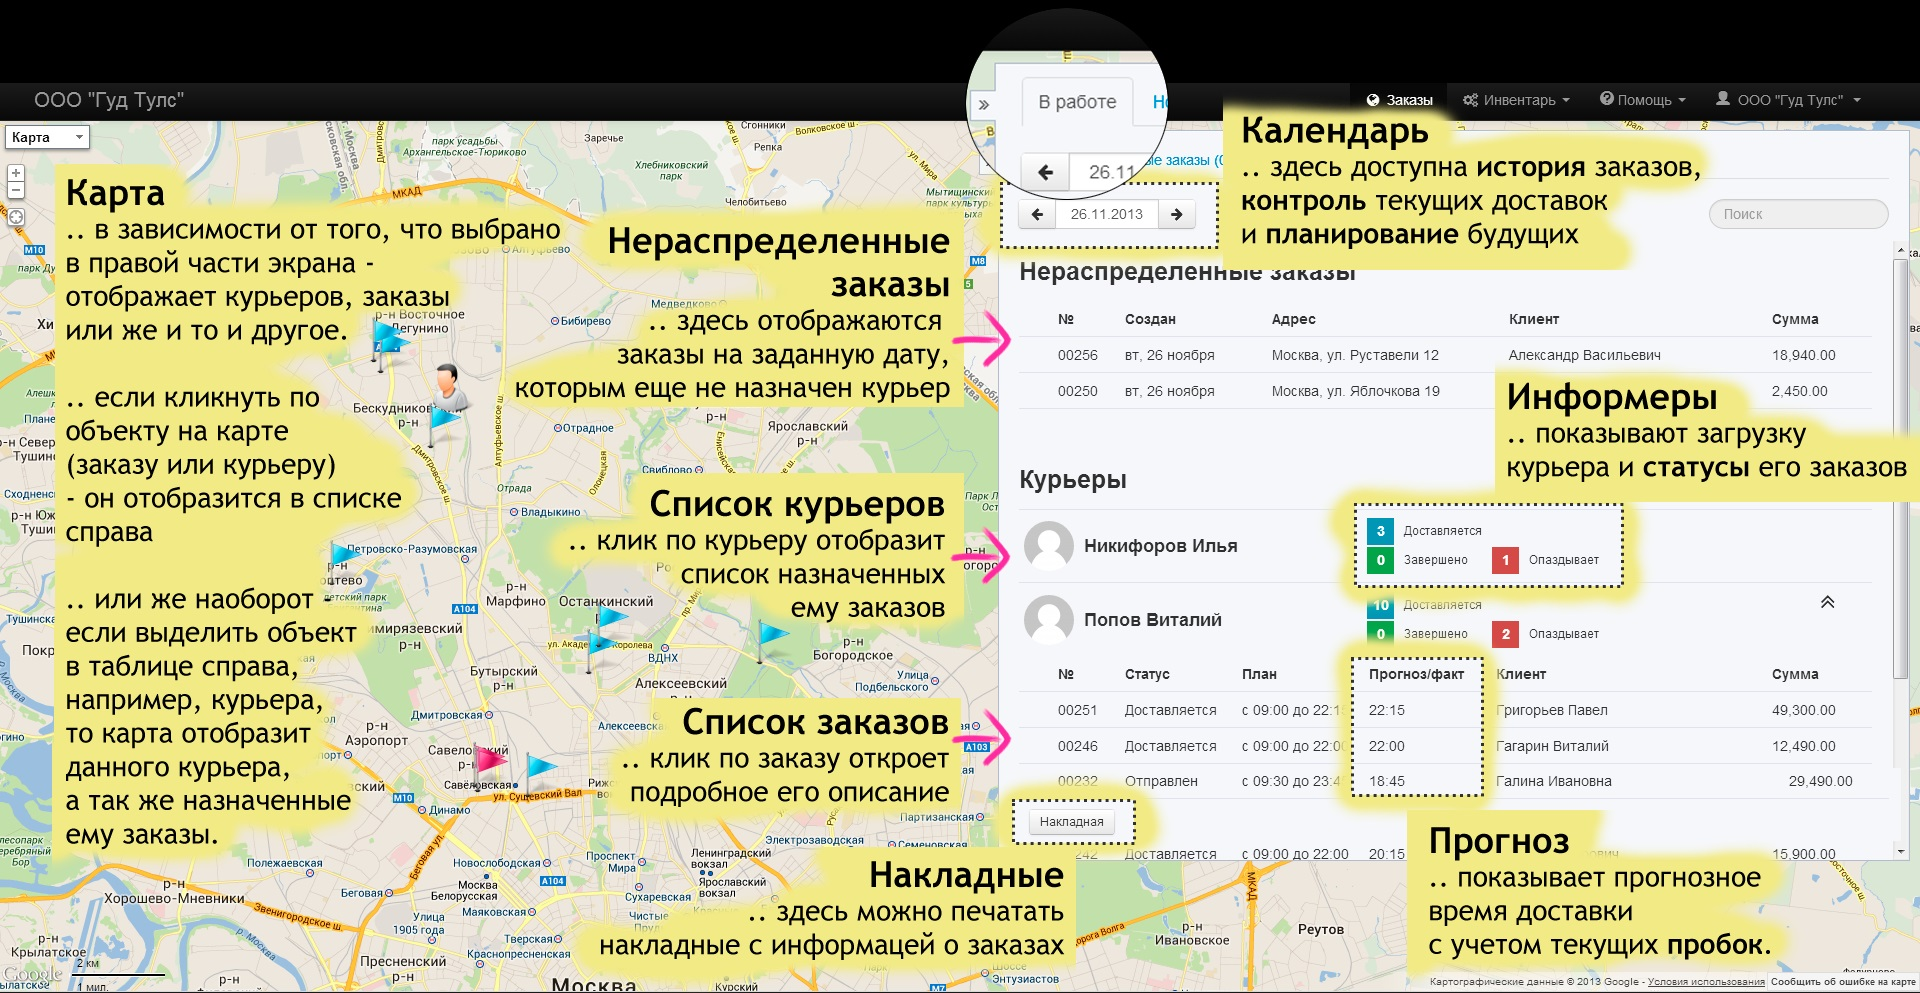 http://oborot.ru/images/articles/deliverator_manager.jpg